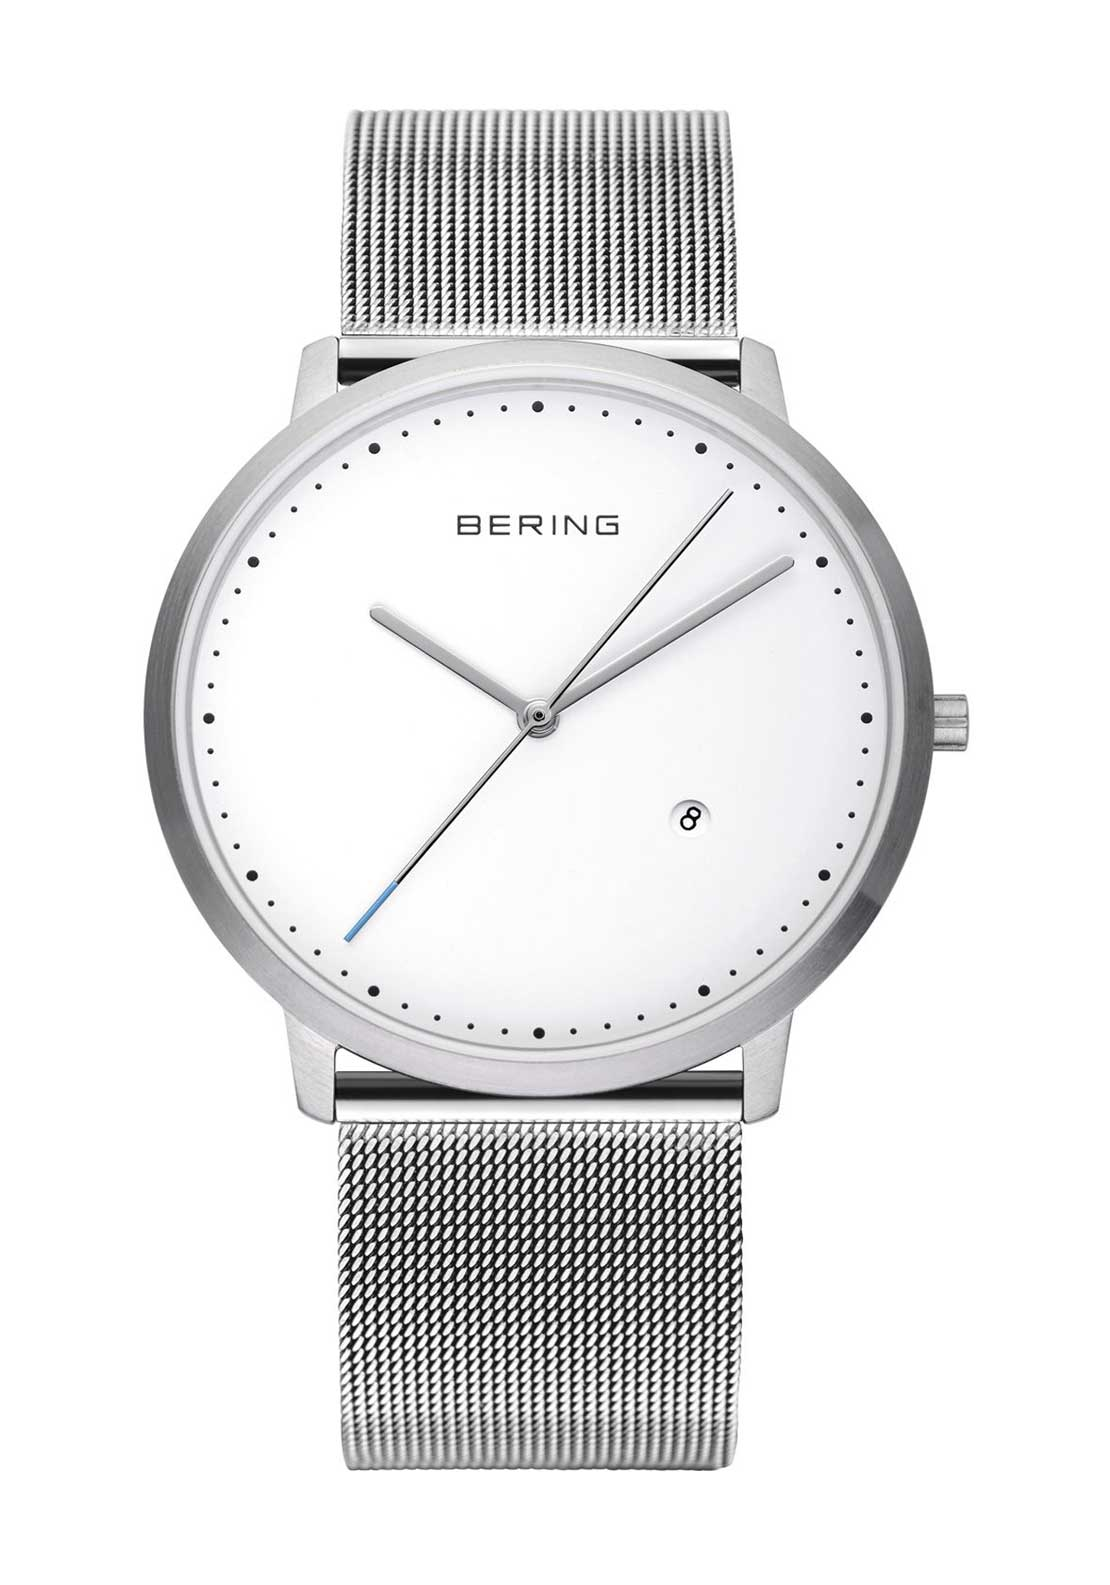 Bering Unisex Milanese Watch, Silver